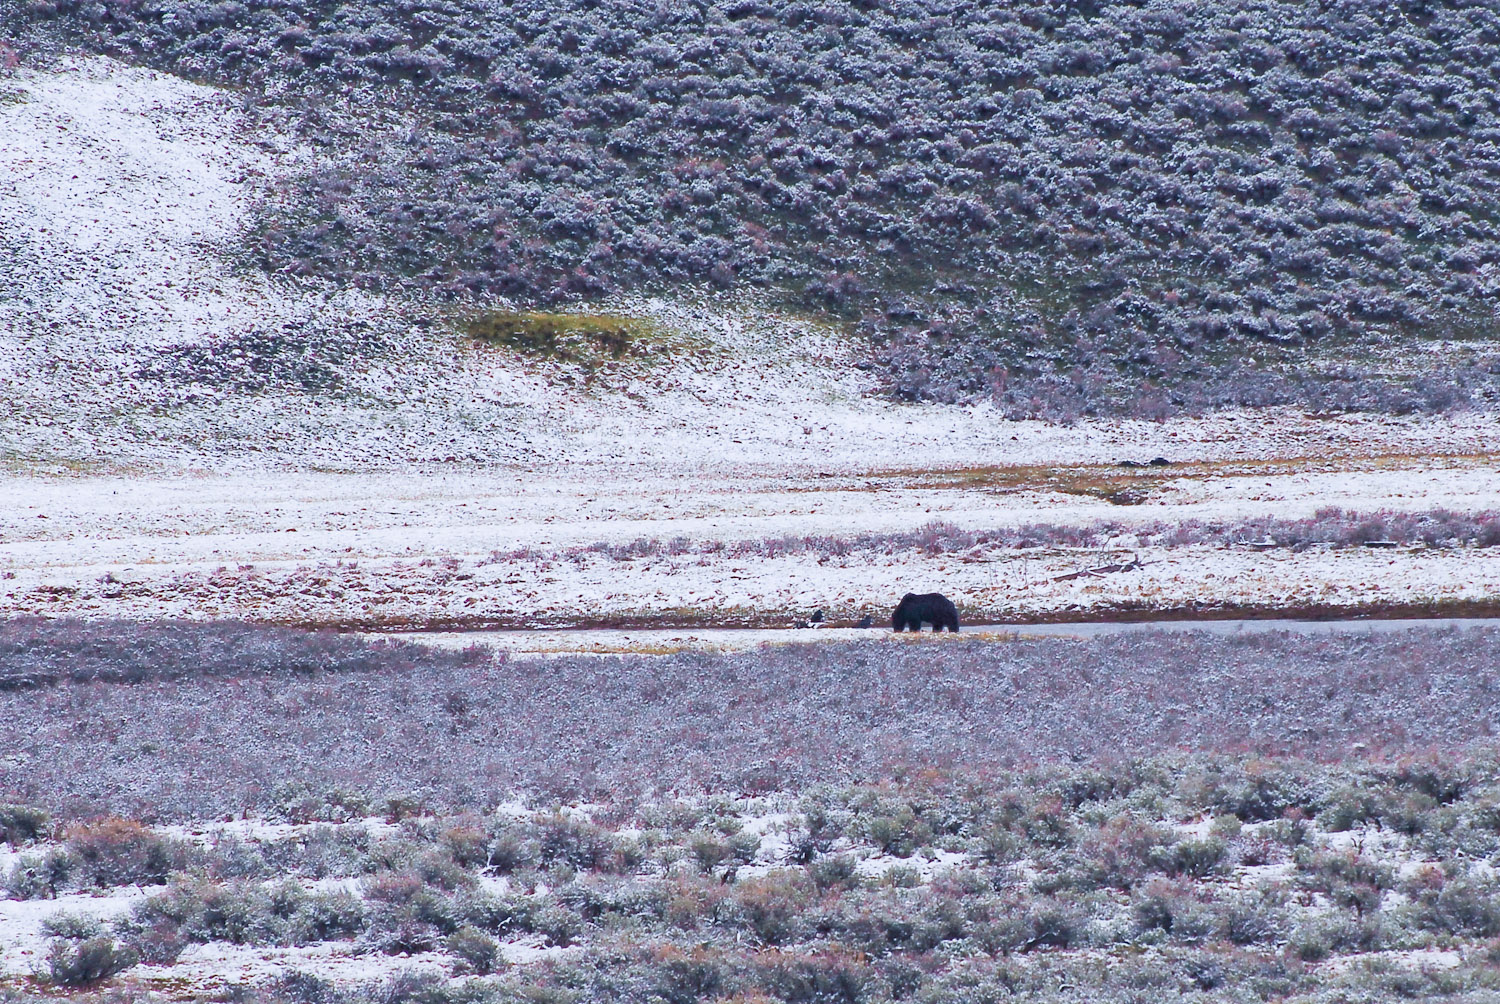 Grizzly Bear drinking water after eating at Hayden Valley